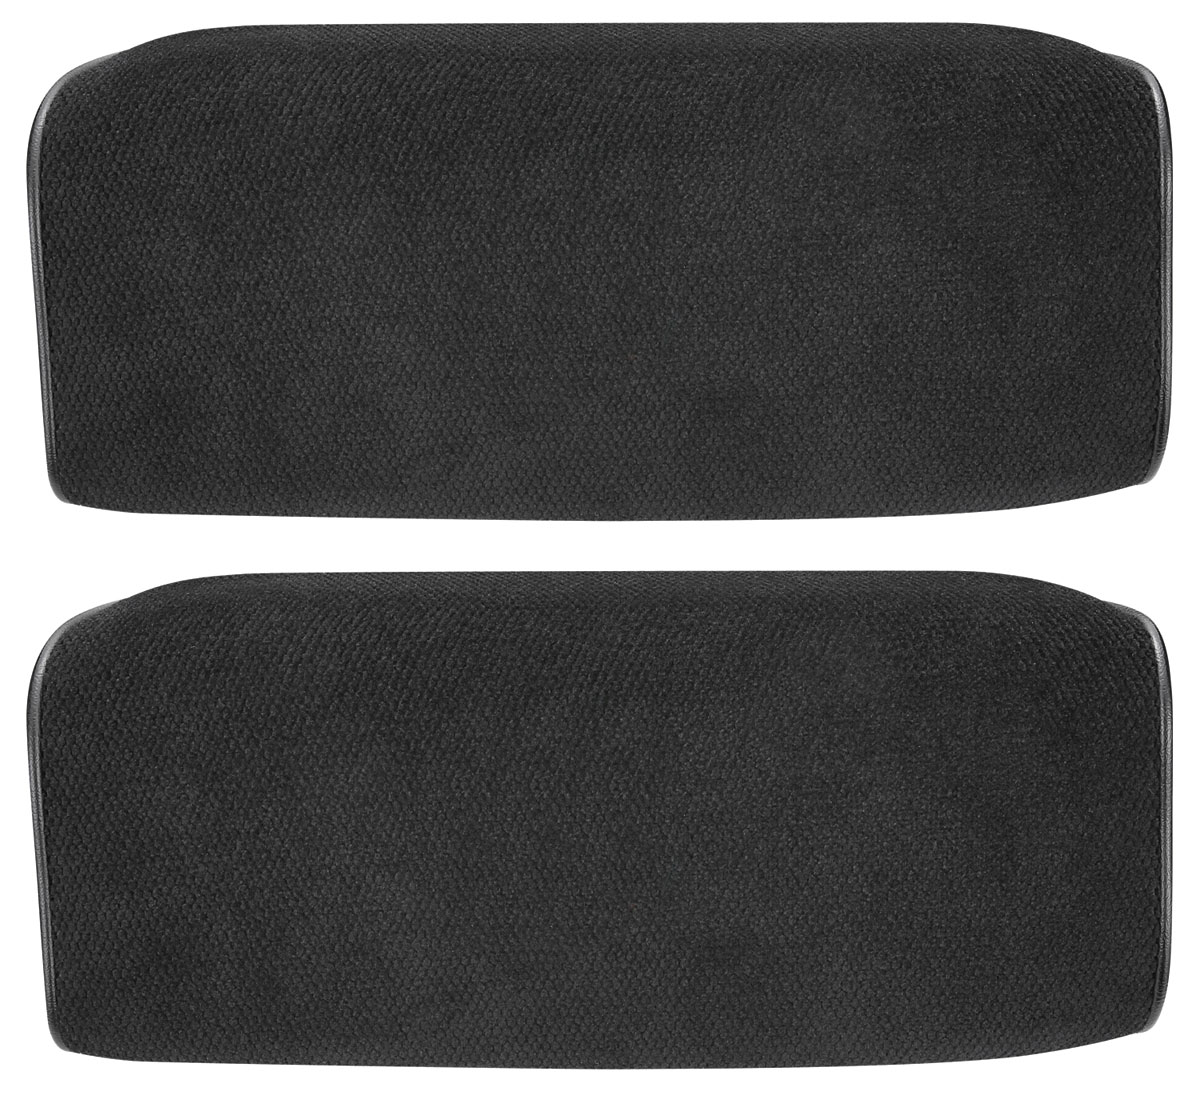 Photo of Covers, Headrests